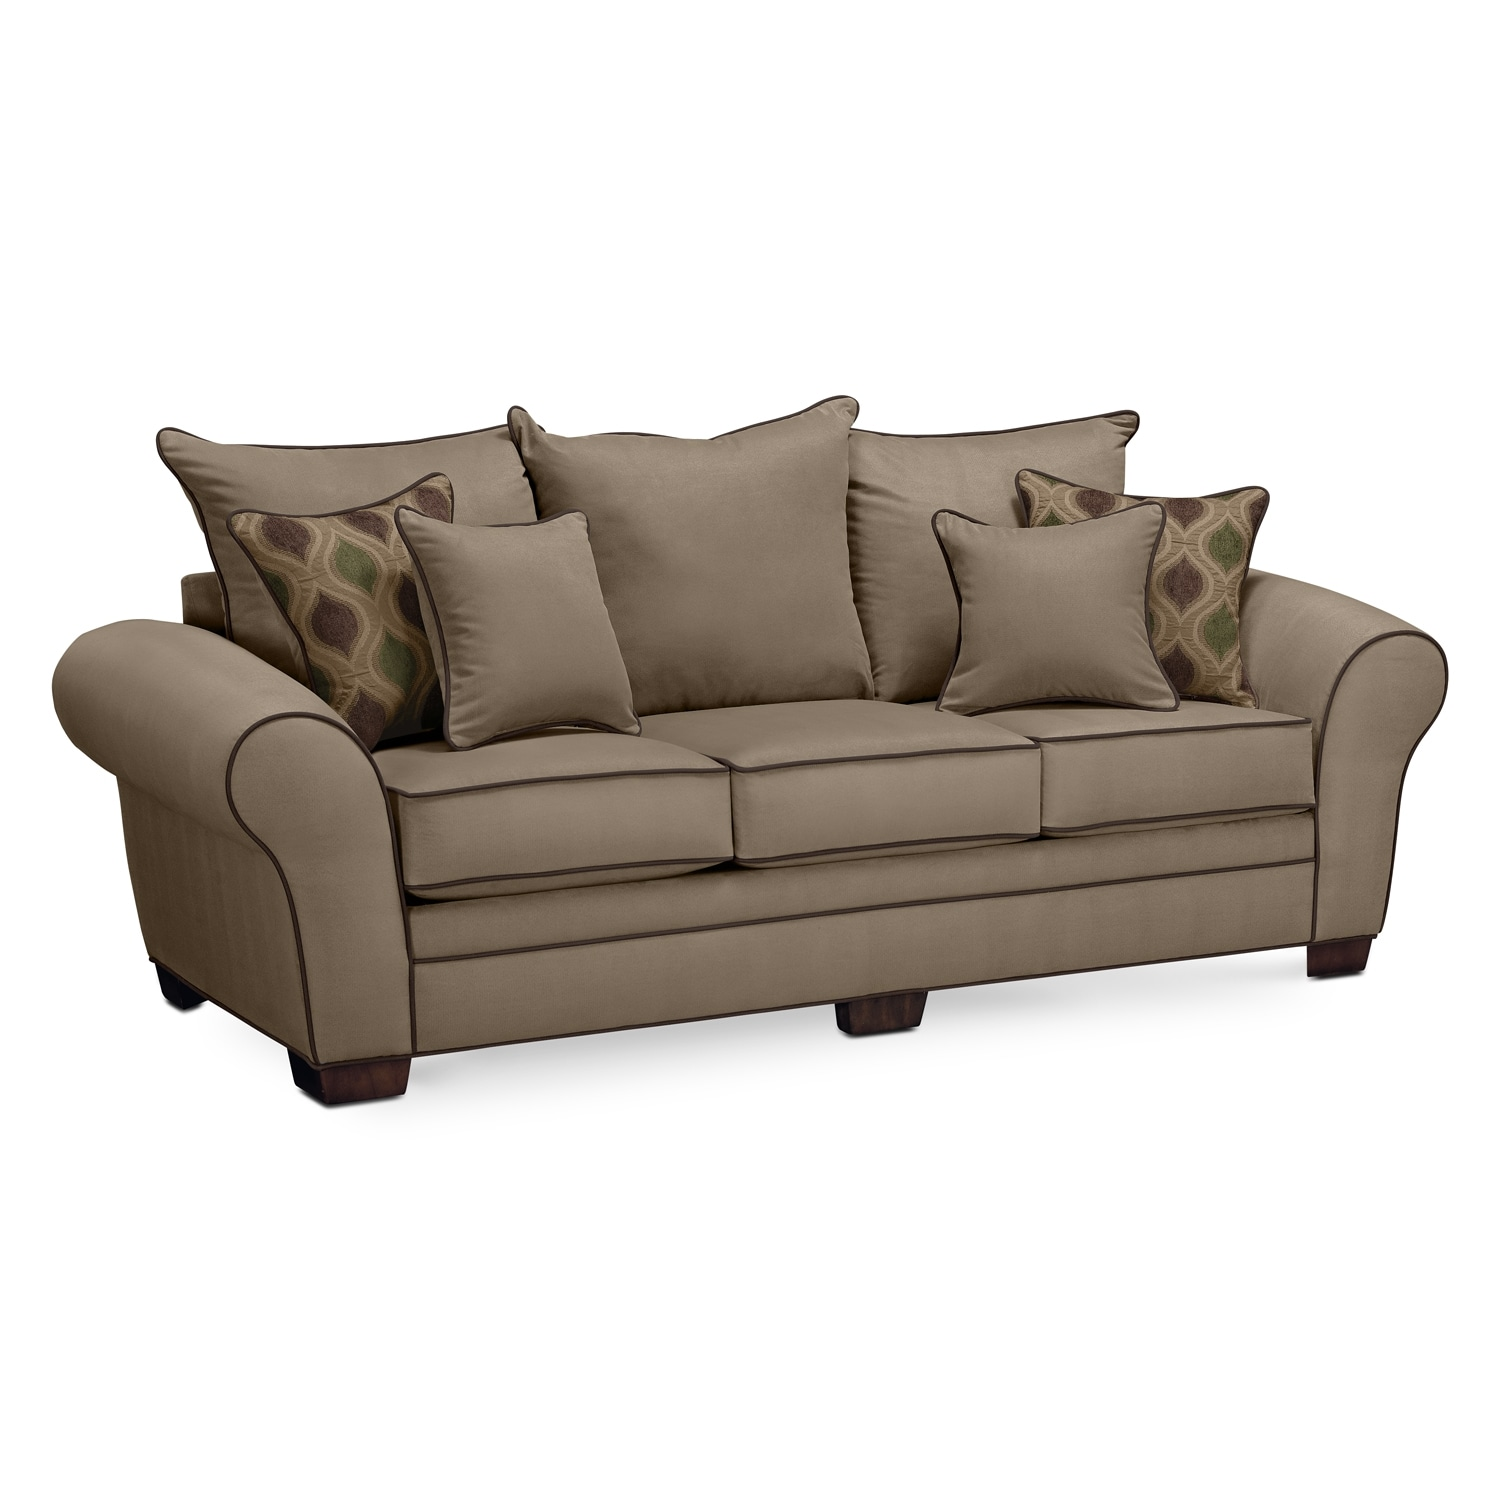 Rendezvous Sofa Tan Value City Furniture